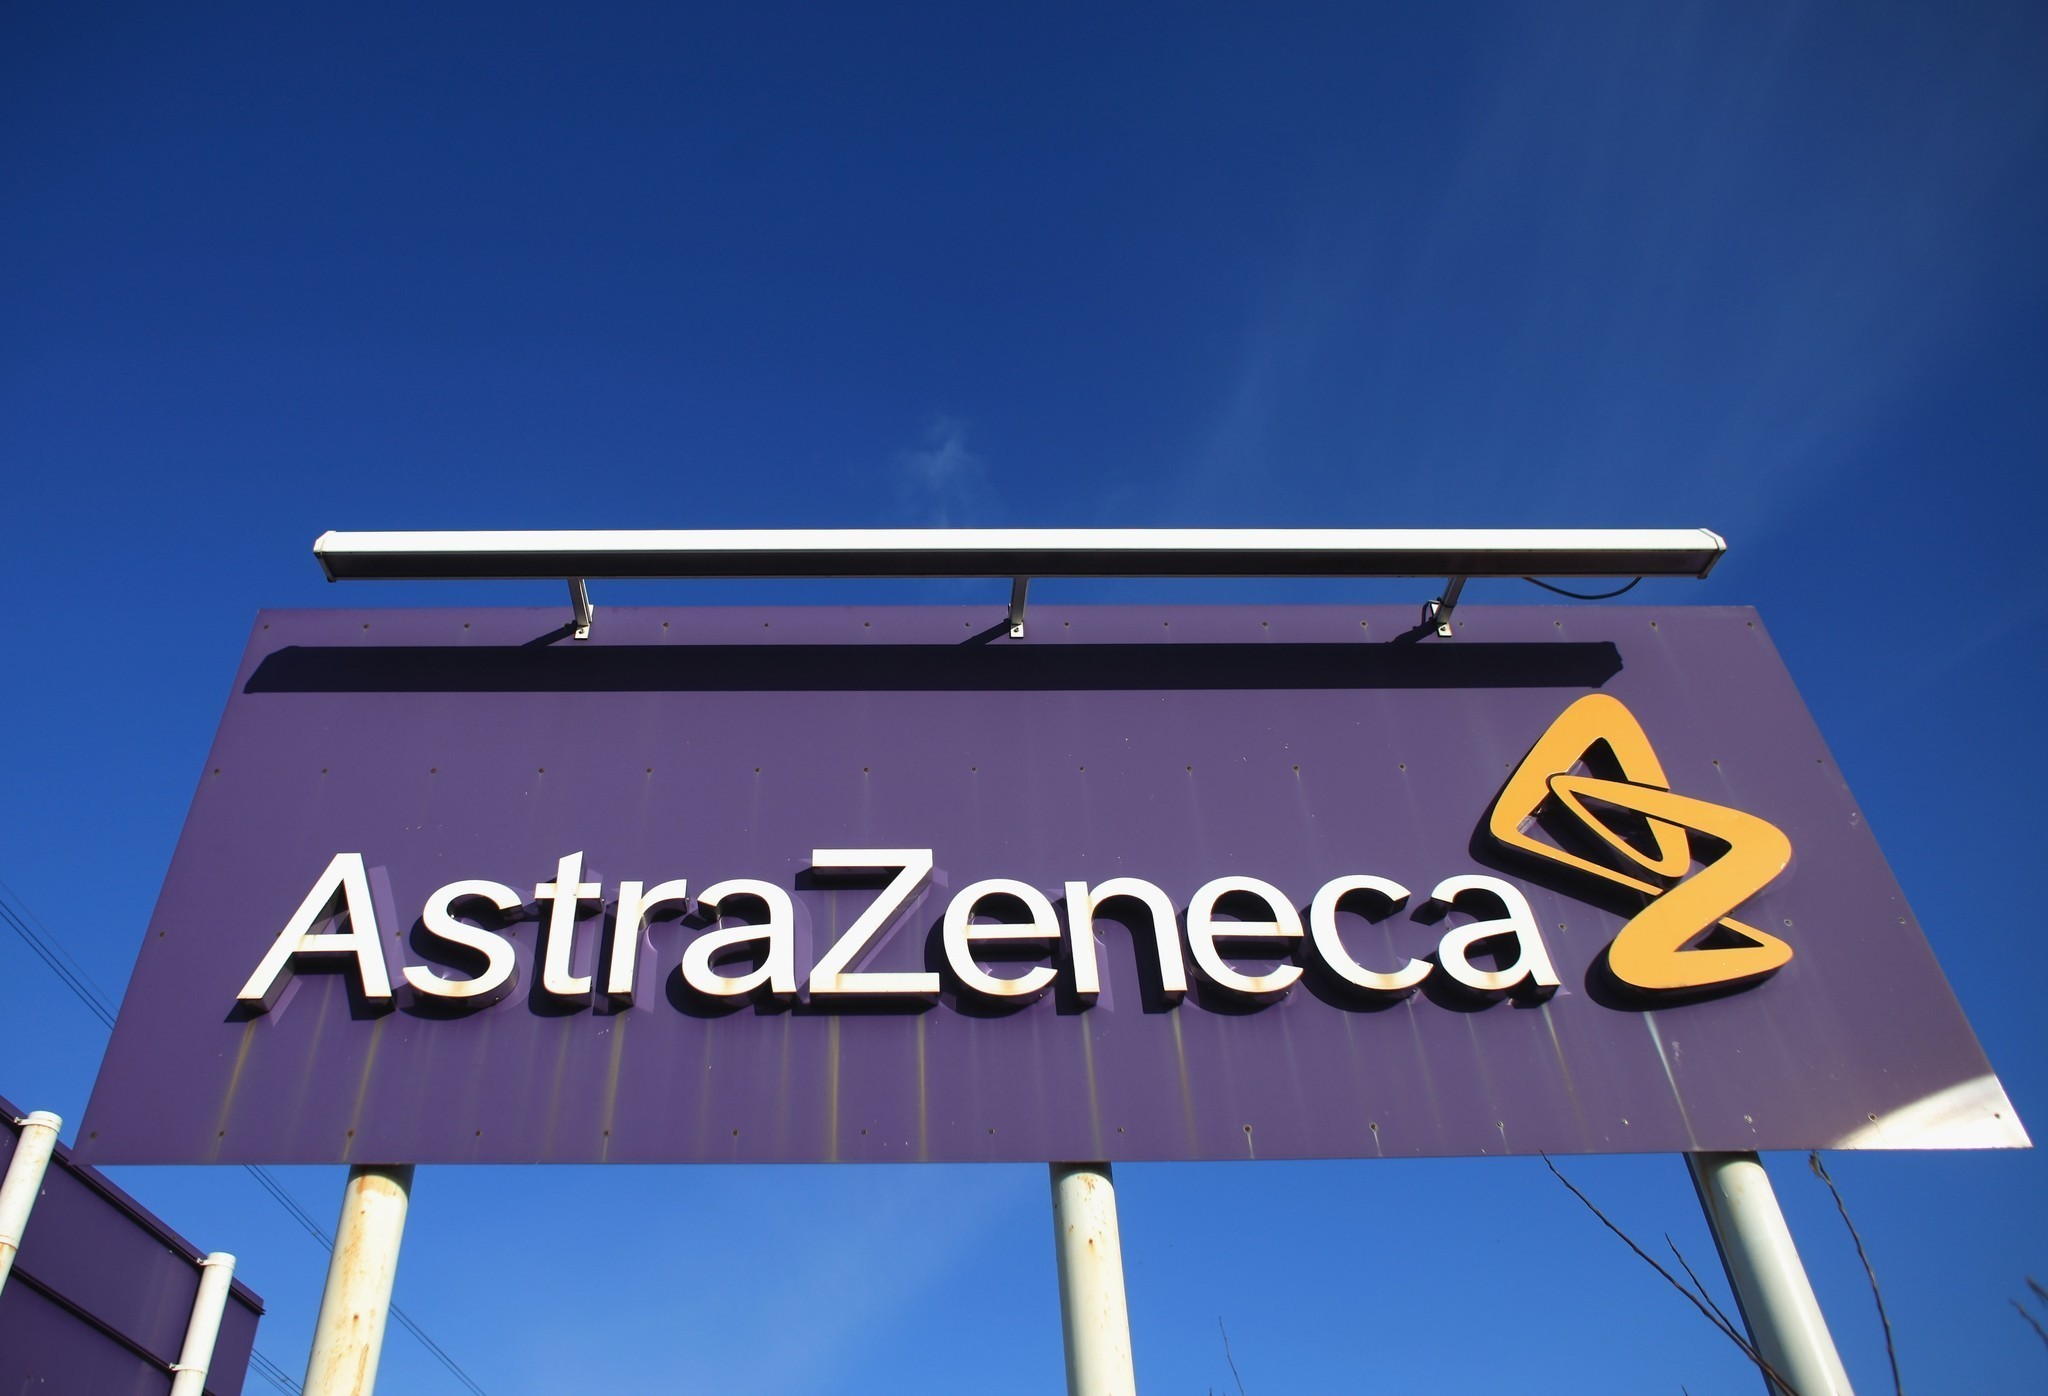 astrazeneca - photo #19